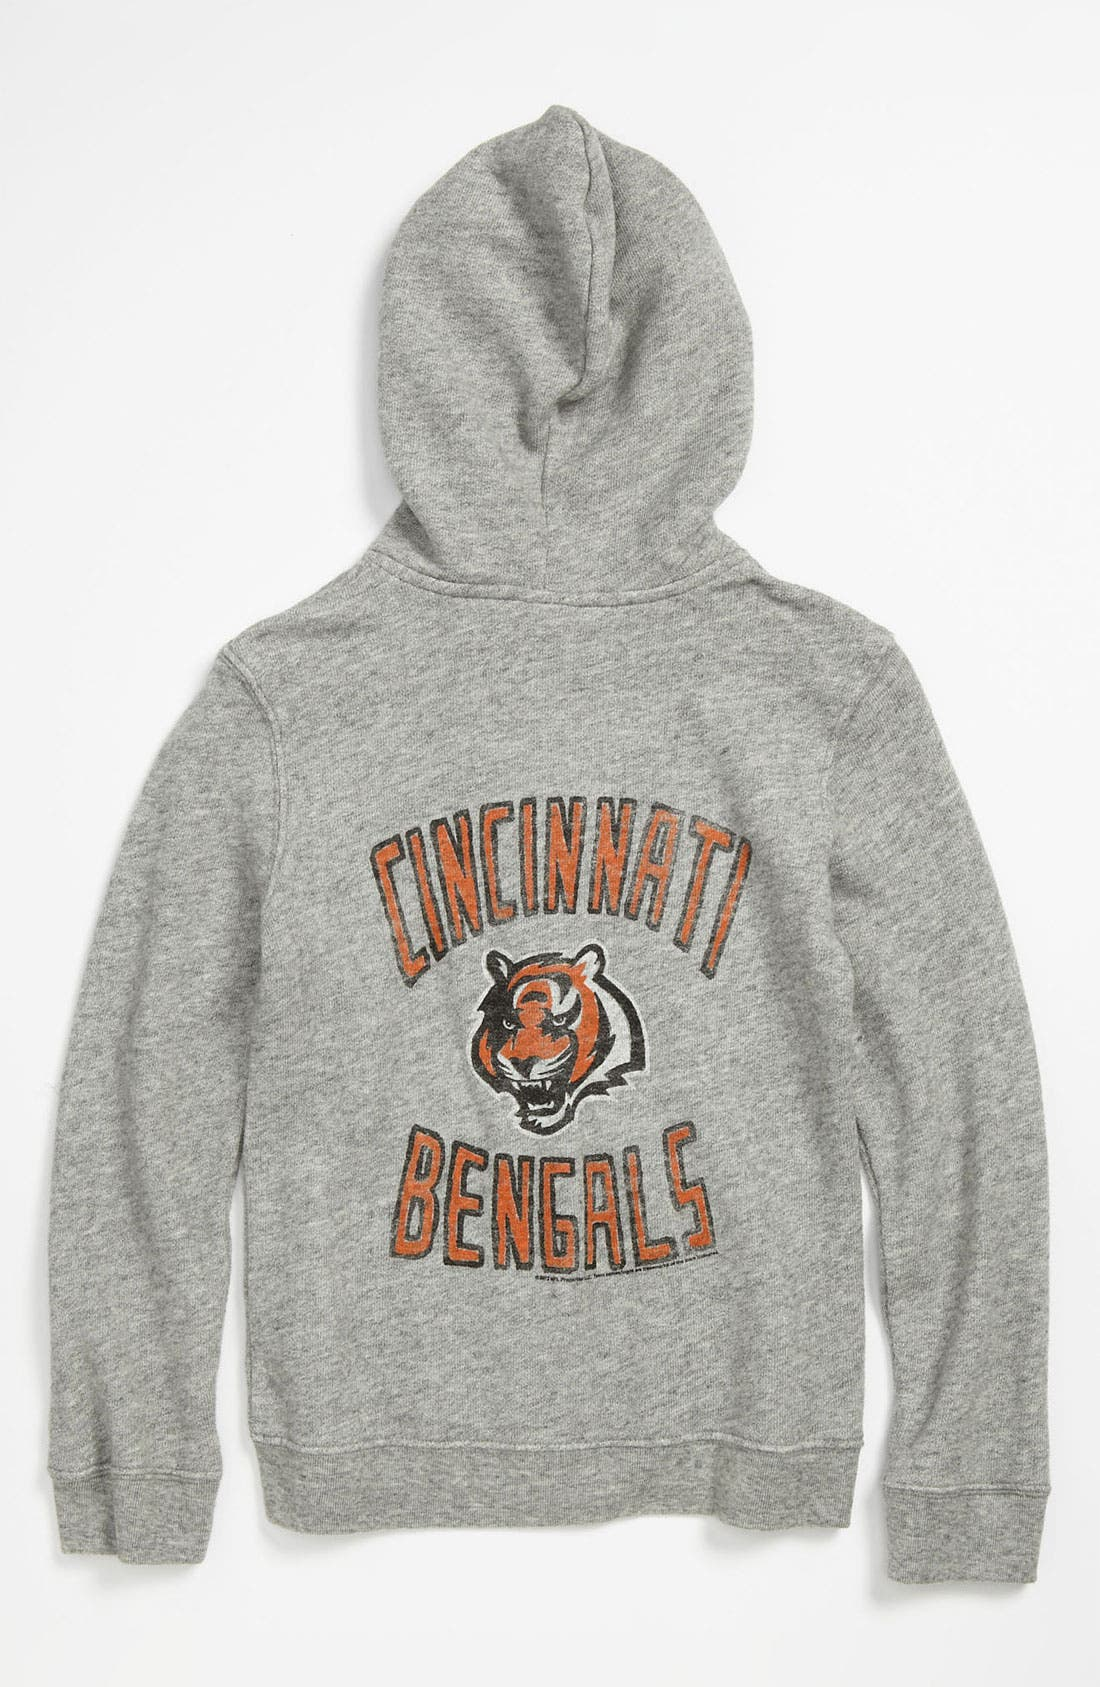 Alternate Image 1 Selected - Junk Food 'Cincinnati Bengals' Hoodie (Little Boys & Big Boys)